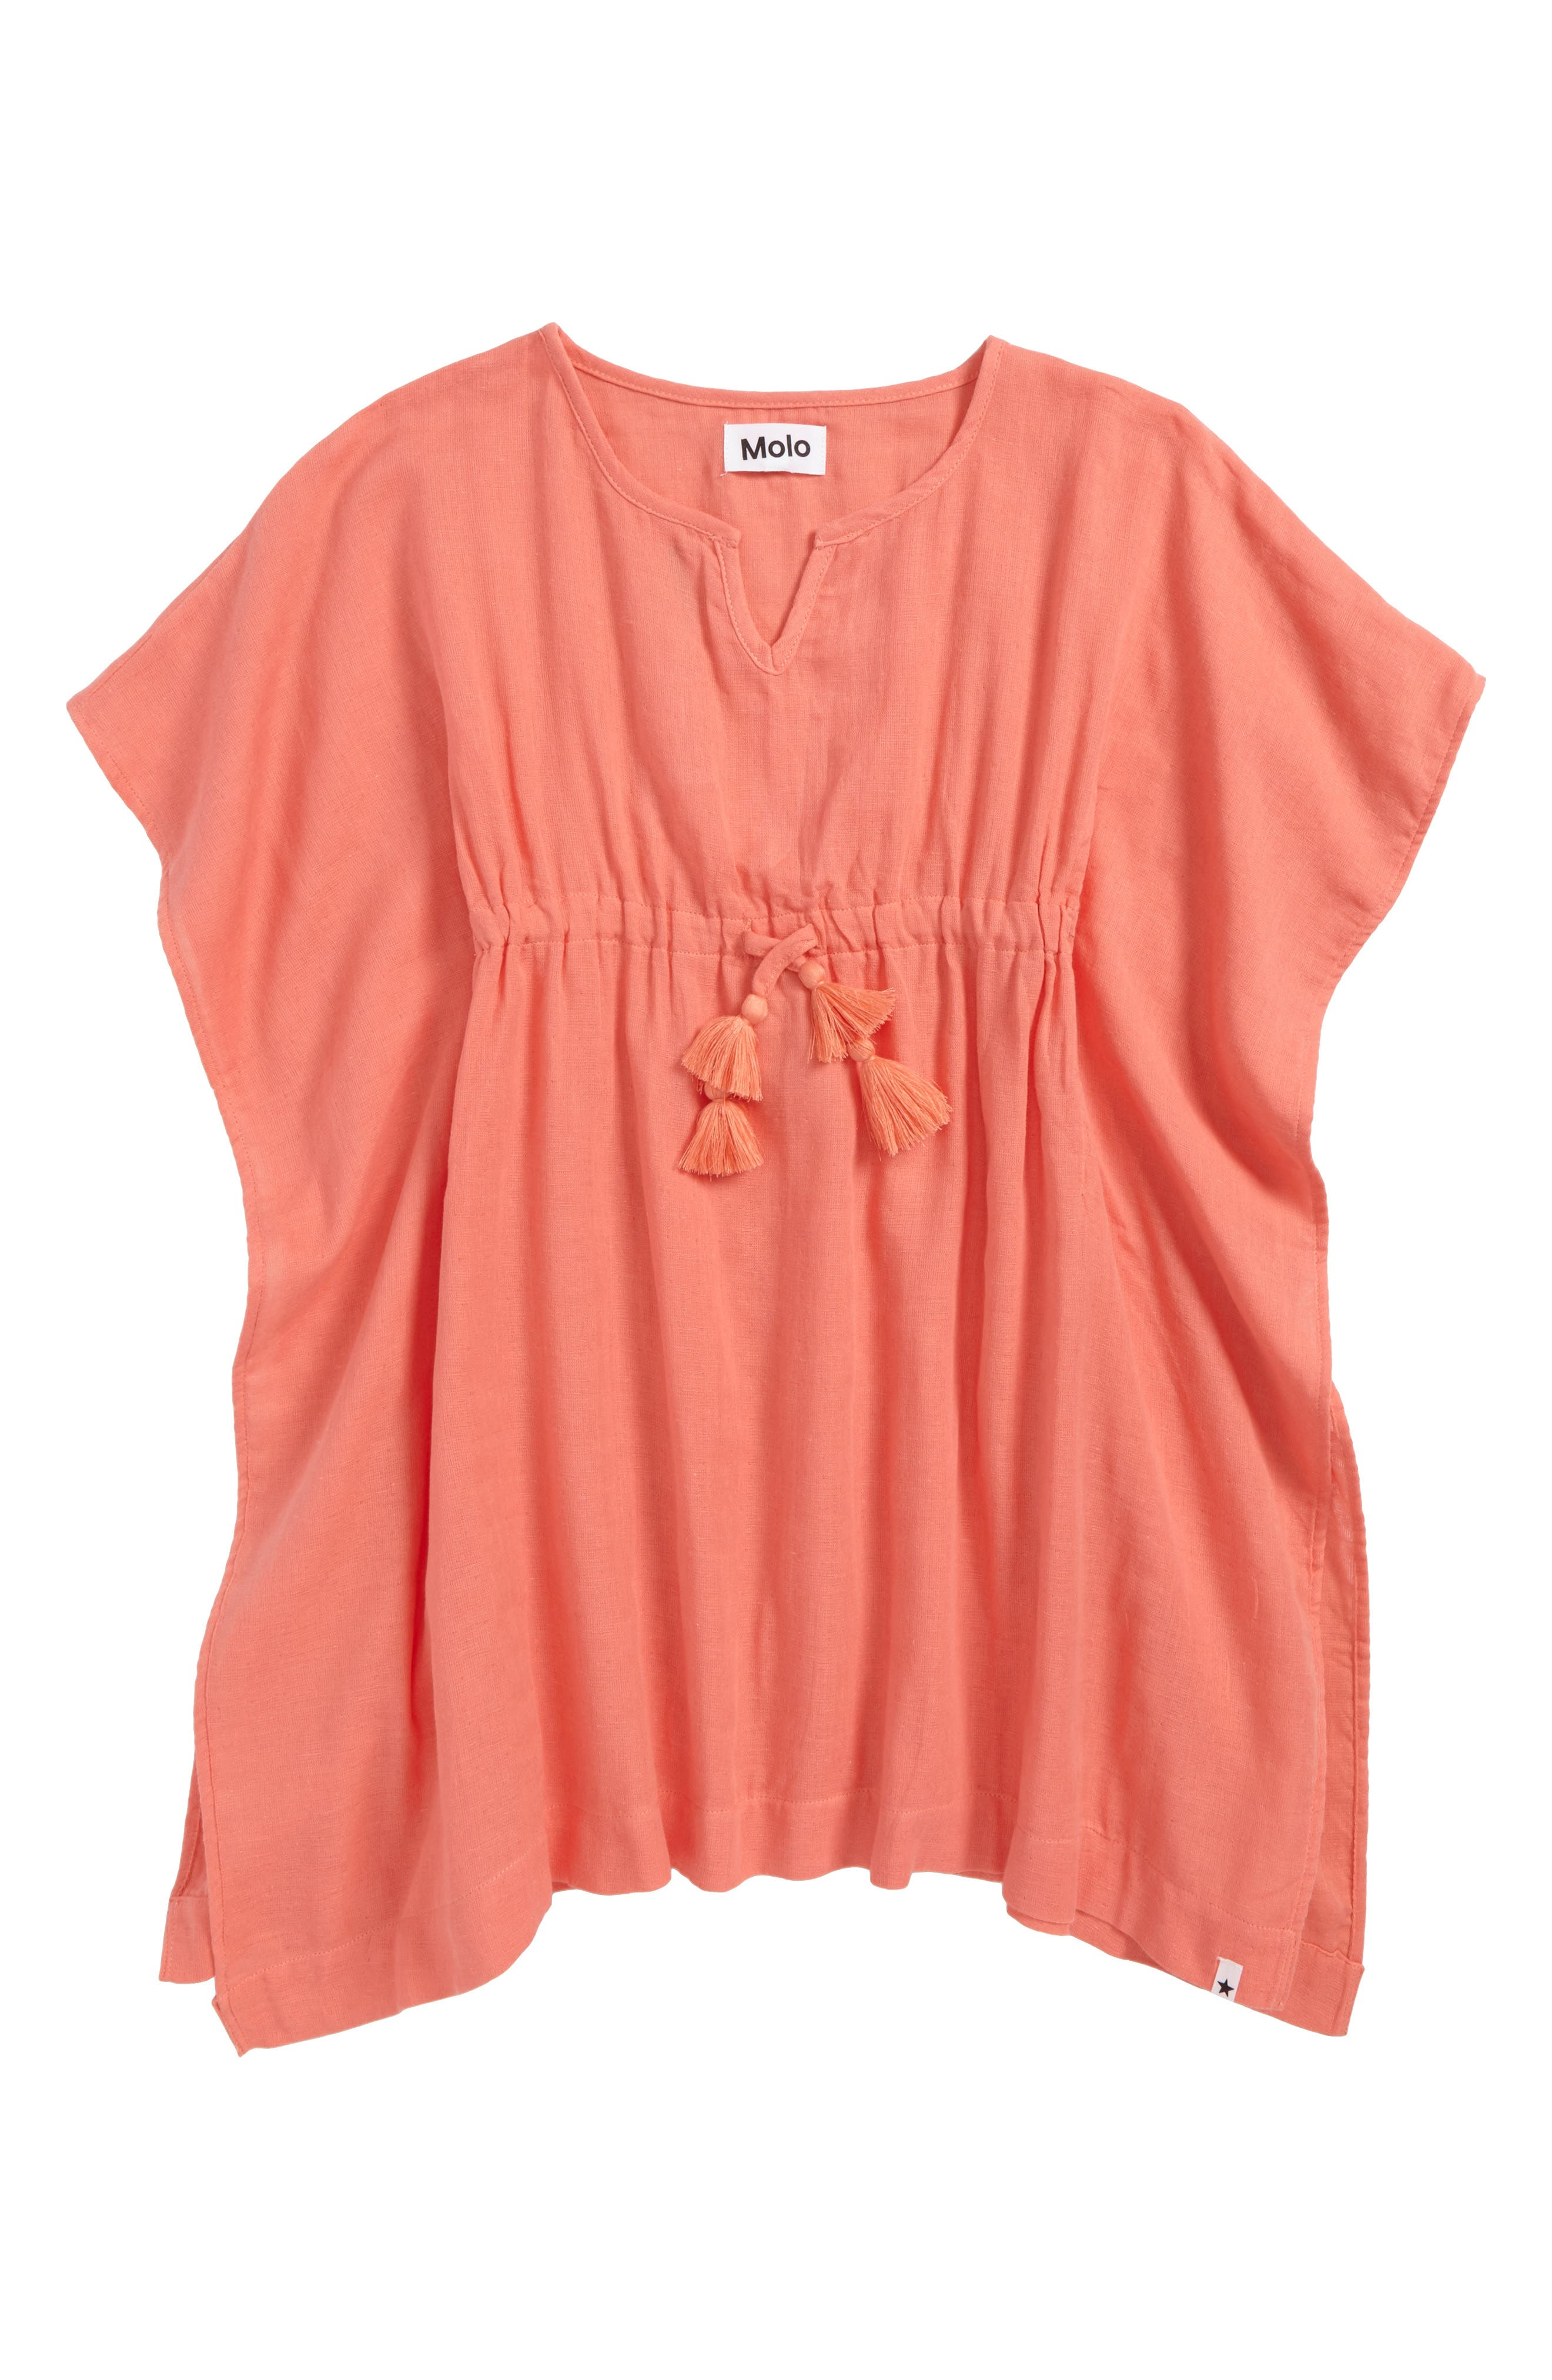 Main Image - Molo Caly Batwing Cover-Up (Little Girls & Big Girls)